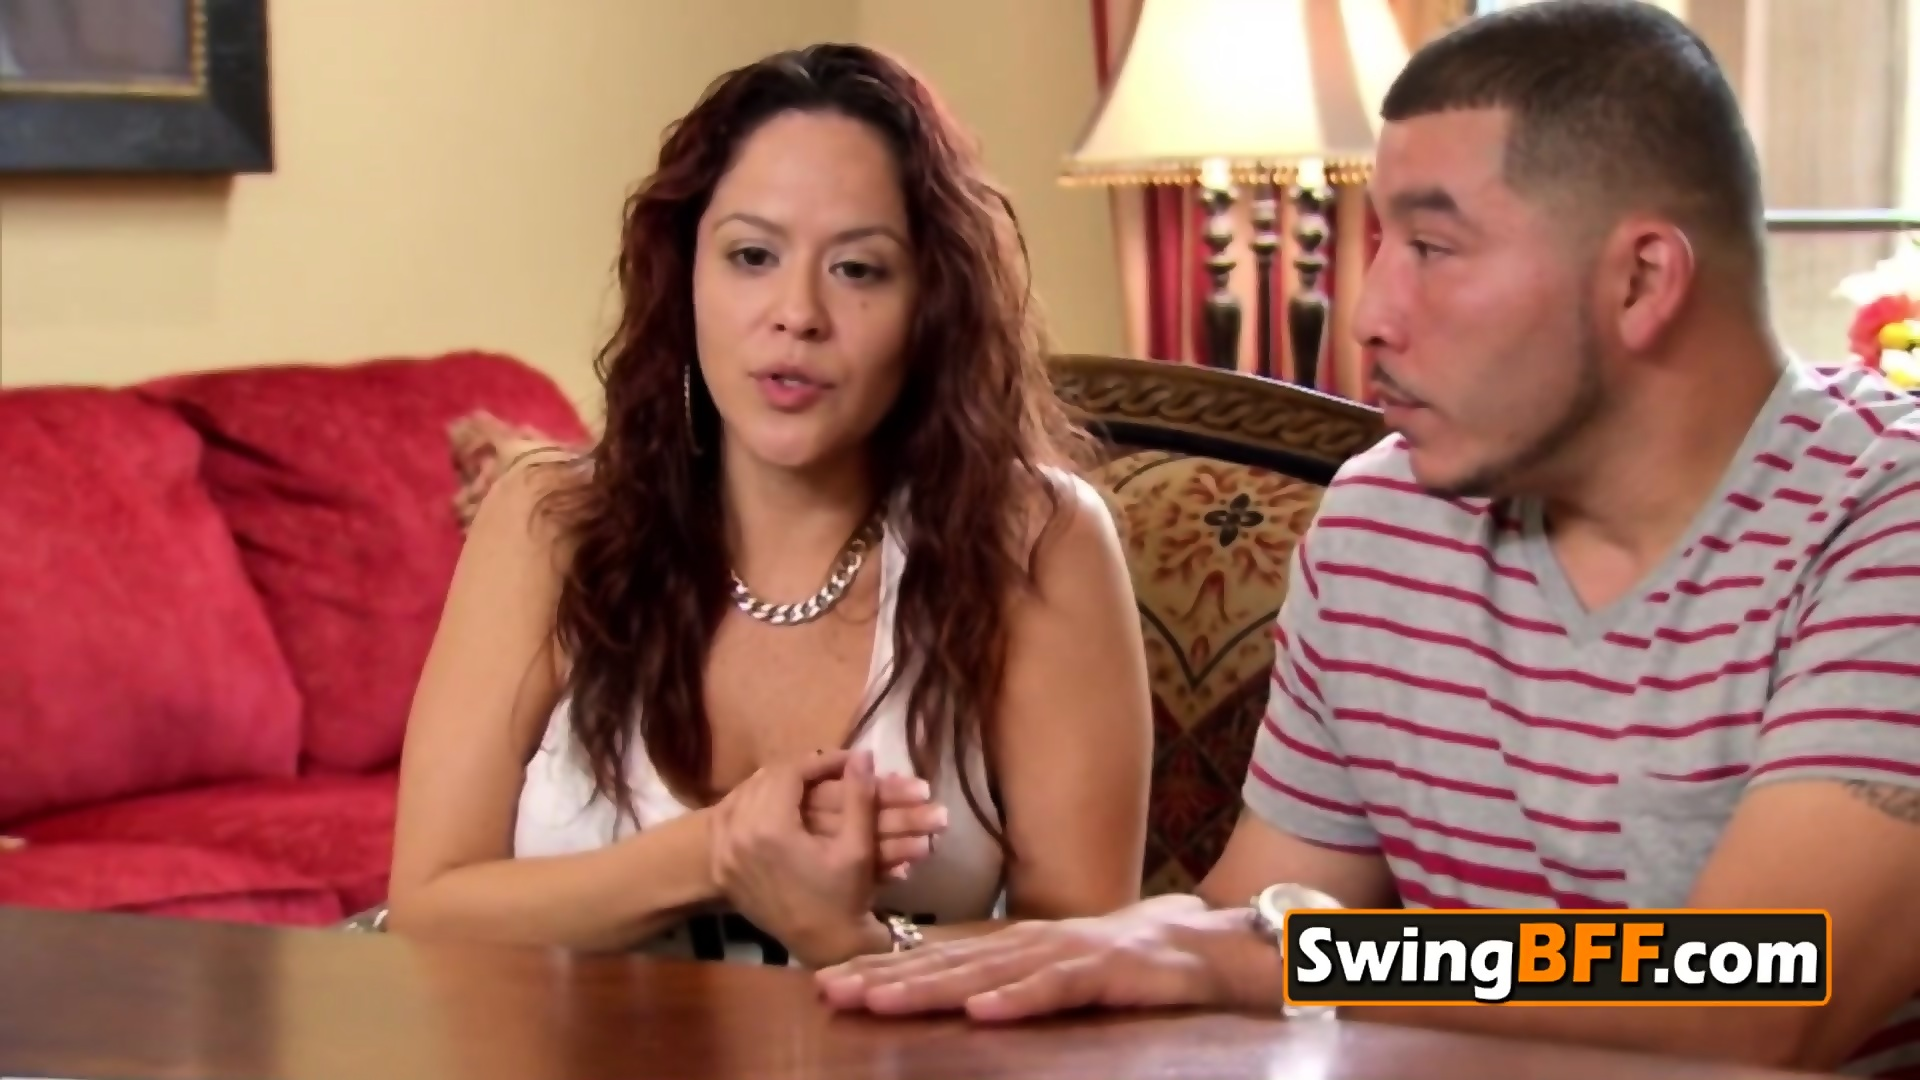 Swingers reality show makes their couples have a real good